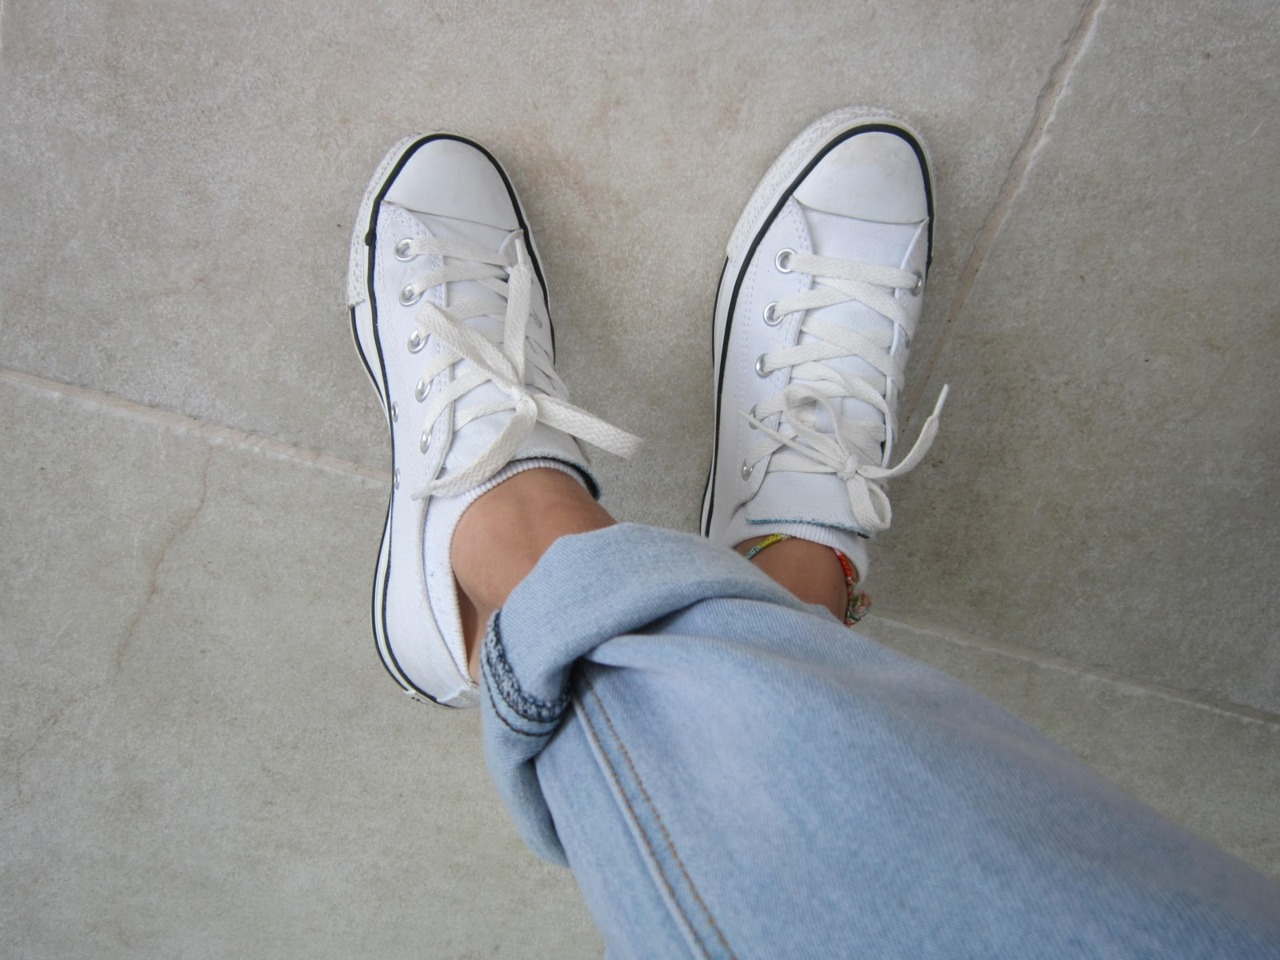 All converse white tumblr pictures advise to wear for autumn in 2019